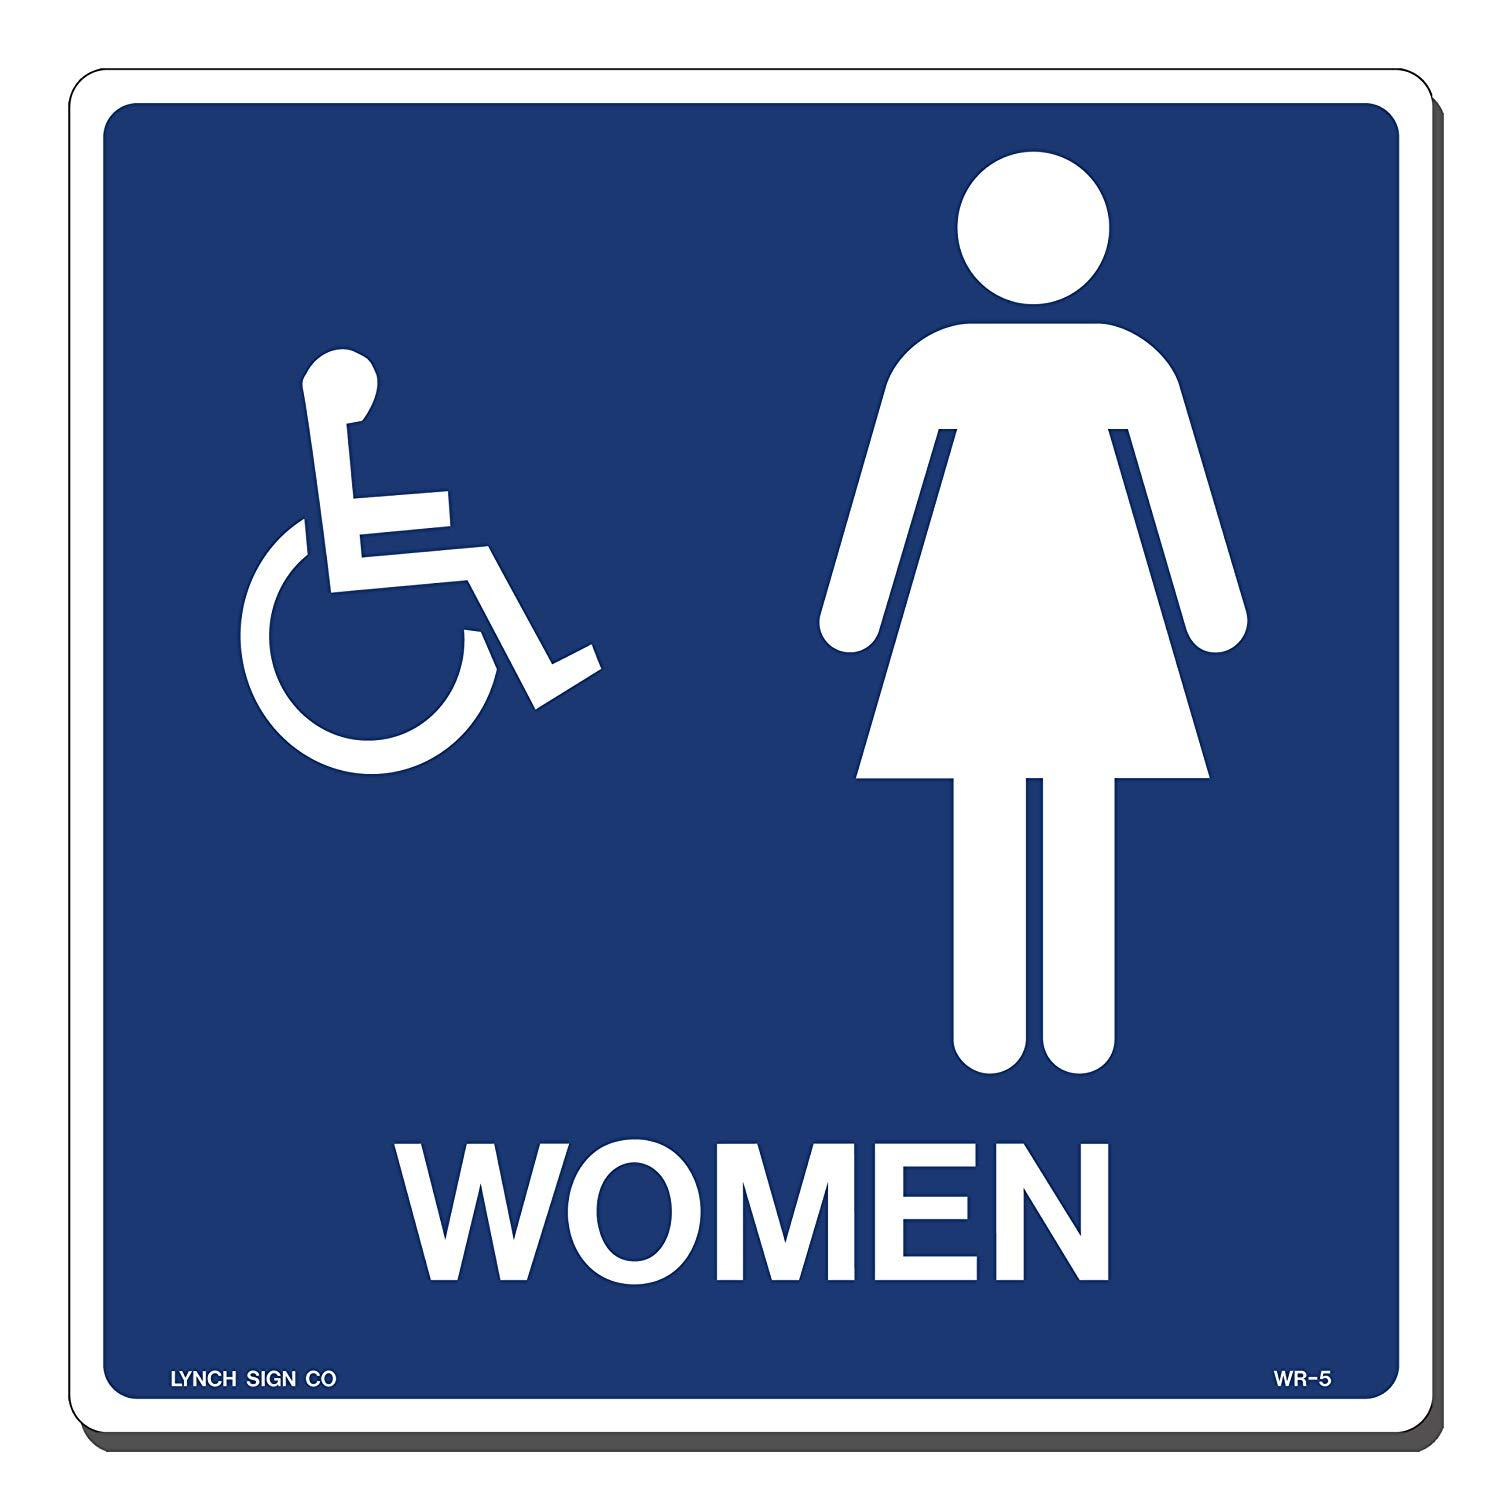 "Lynch WR-5, Women Accessible Bathroom, Blue and White, 9"" x 9"""